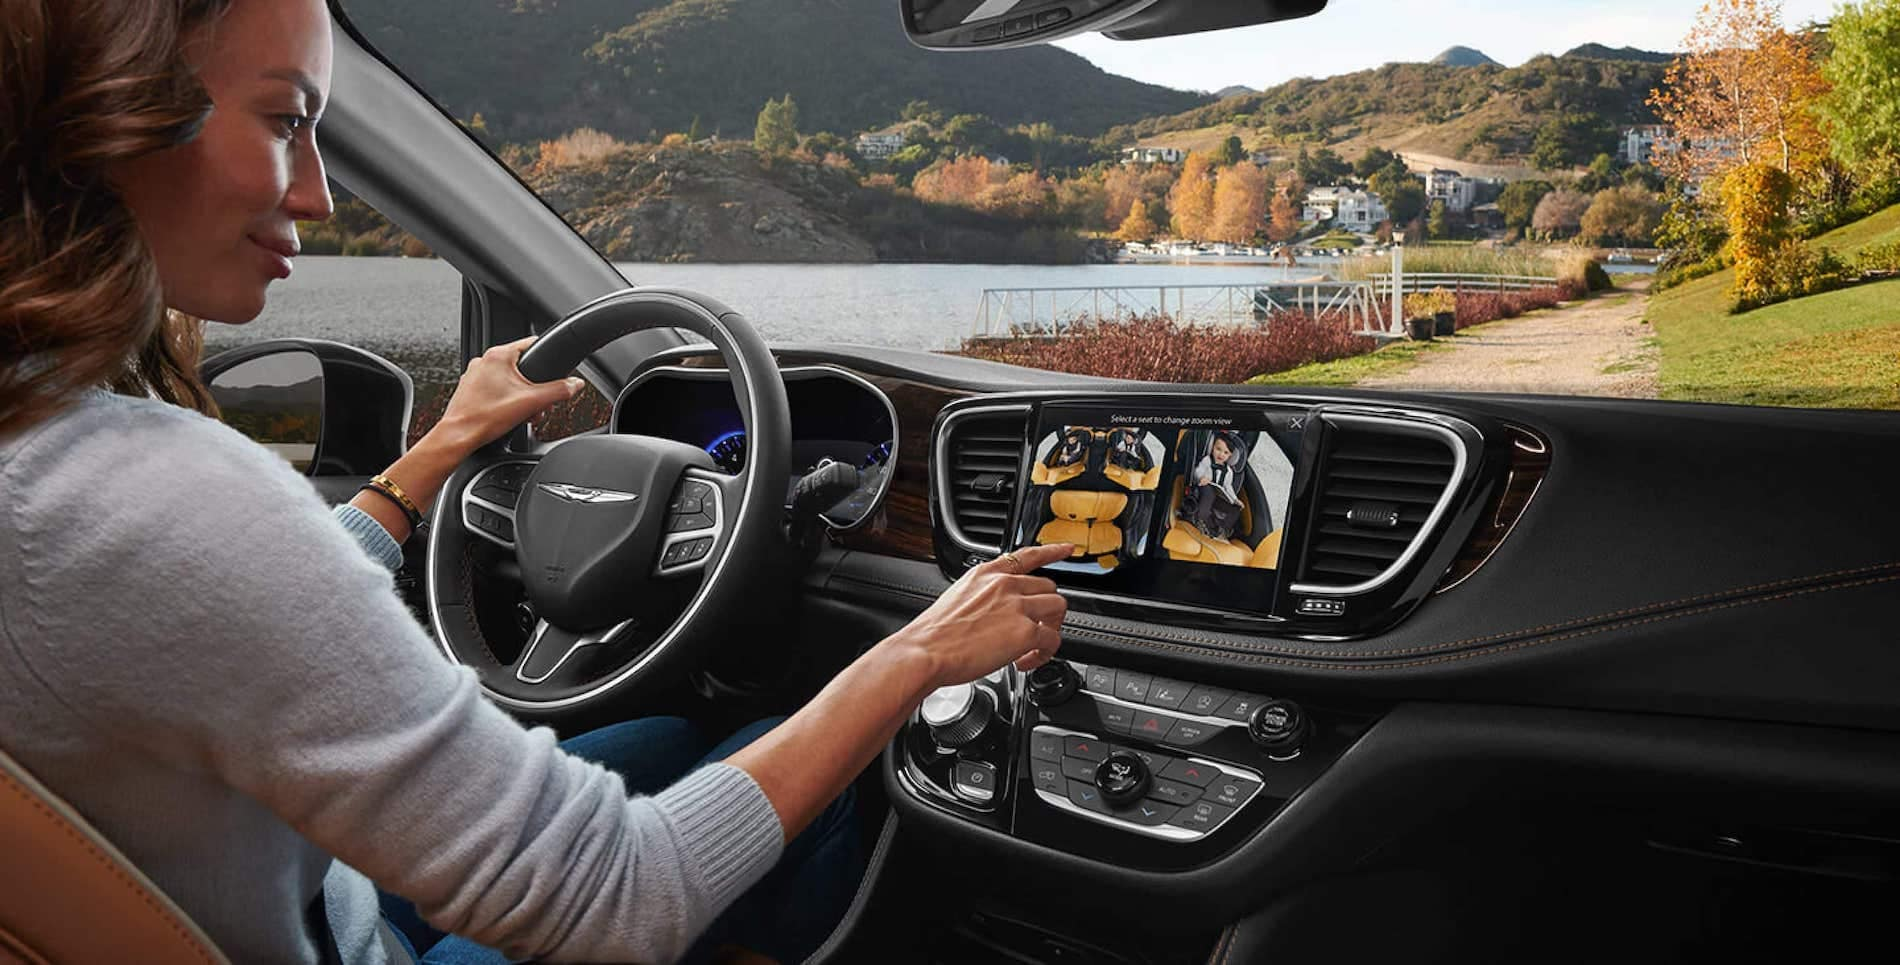 2021 Chrysler Pacifica Safety Features